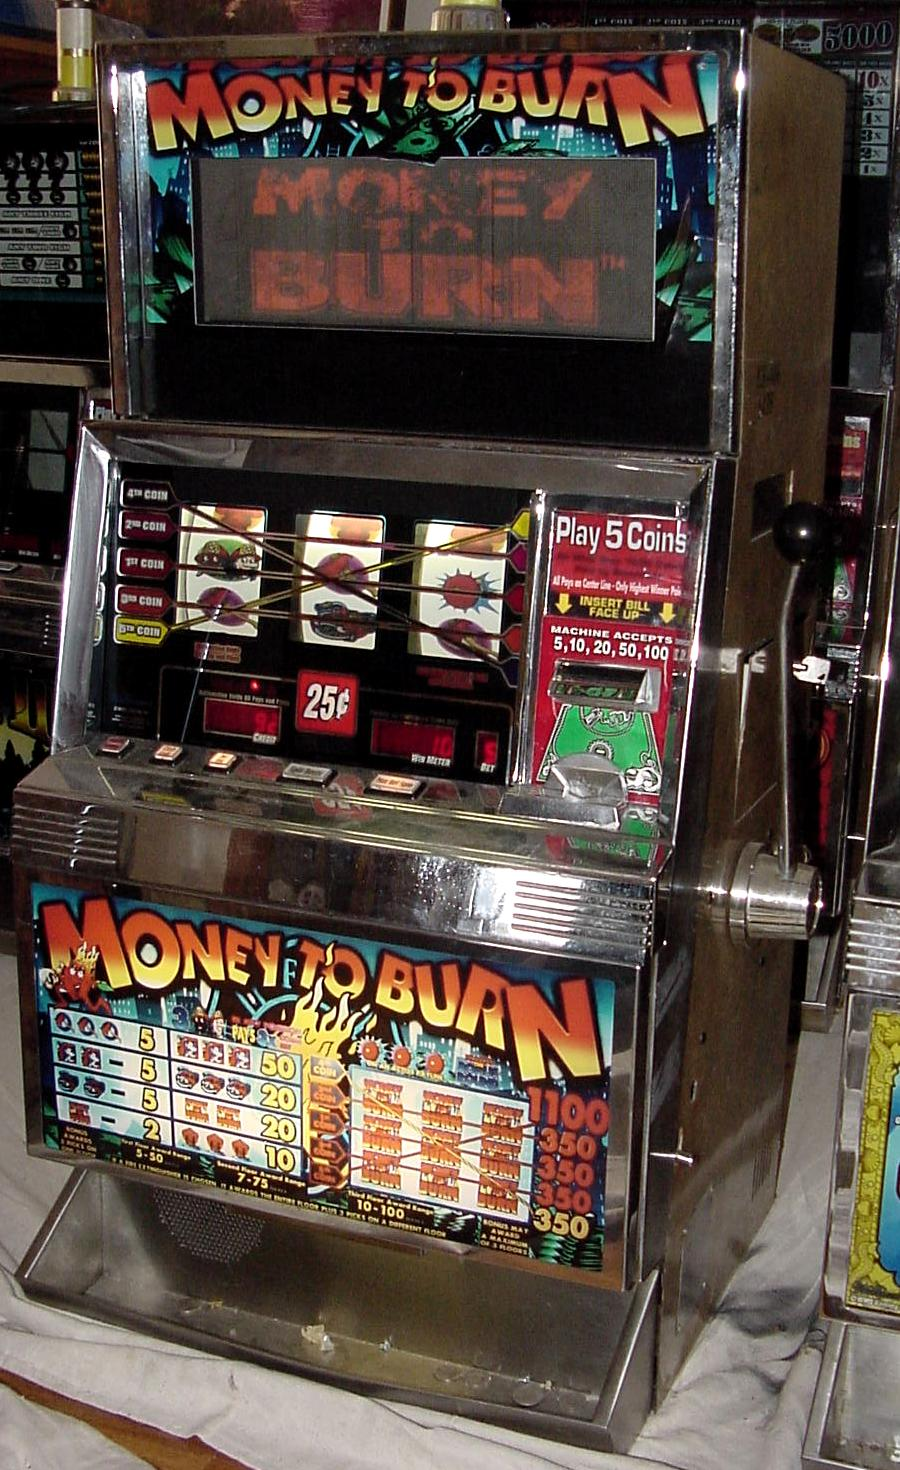 Money to Burn Slots - Free WMS Money To Burn Slot Machine